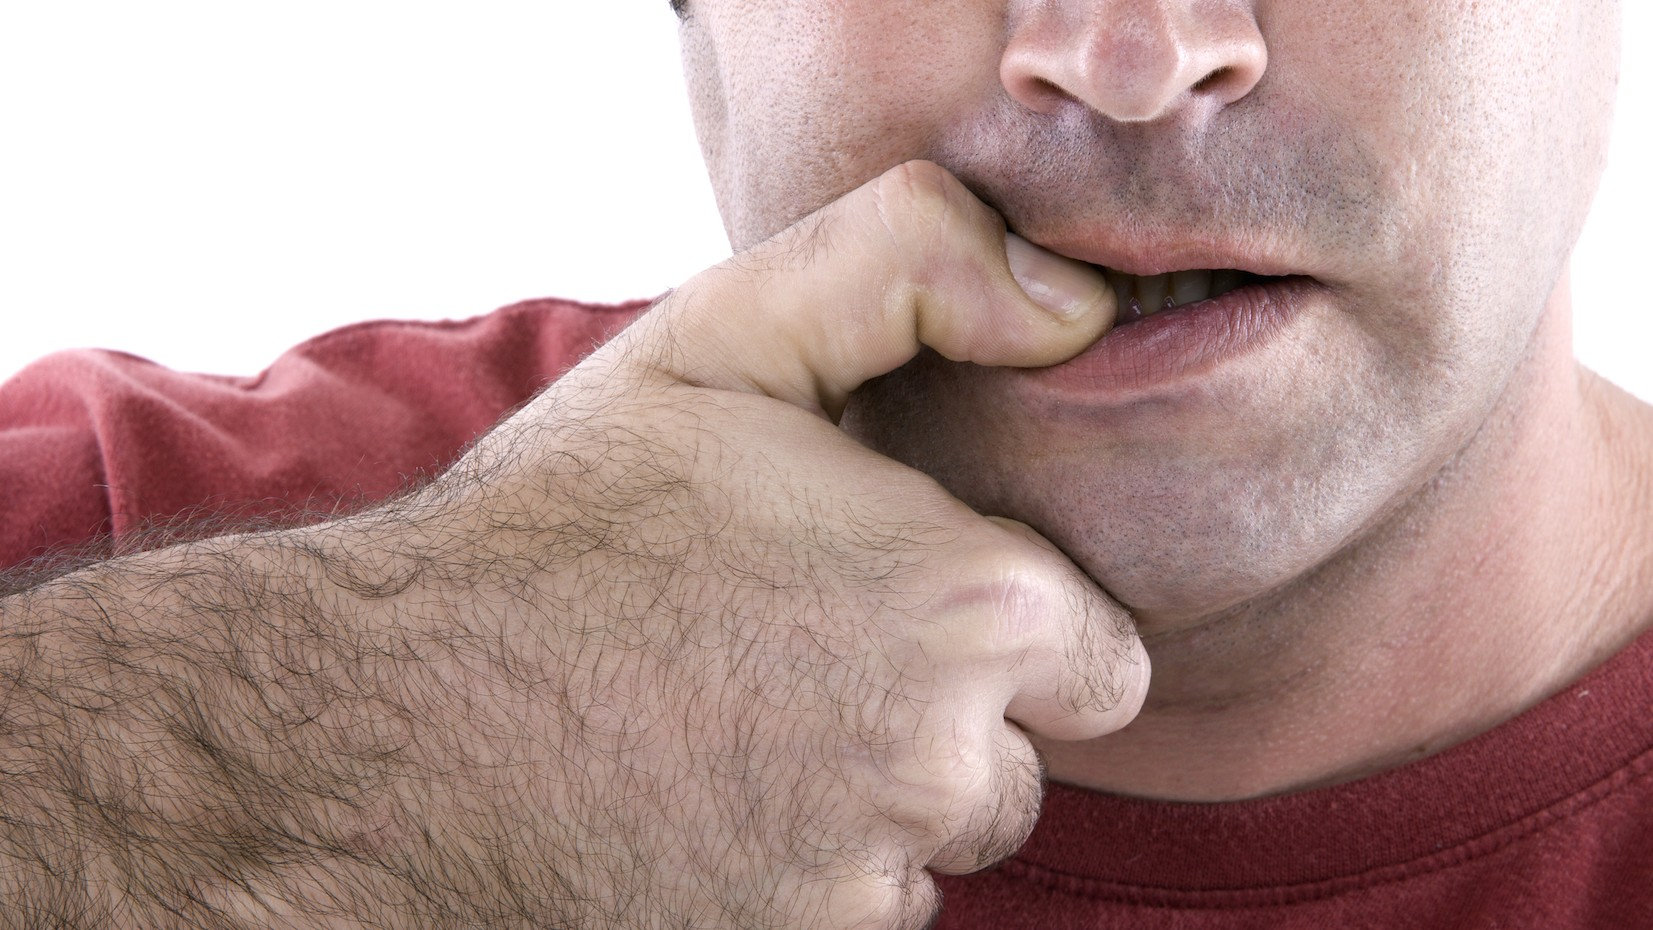 People Who Chew on Their Own Skin Have a Disorder Called Dermatophagia